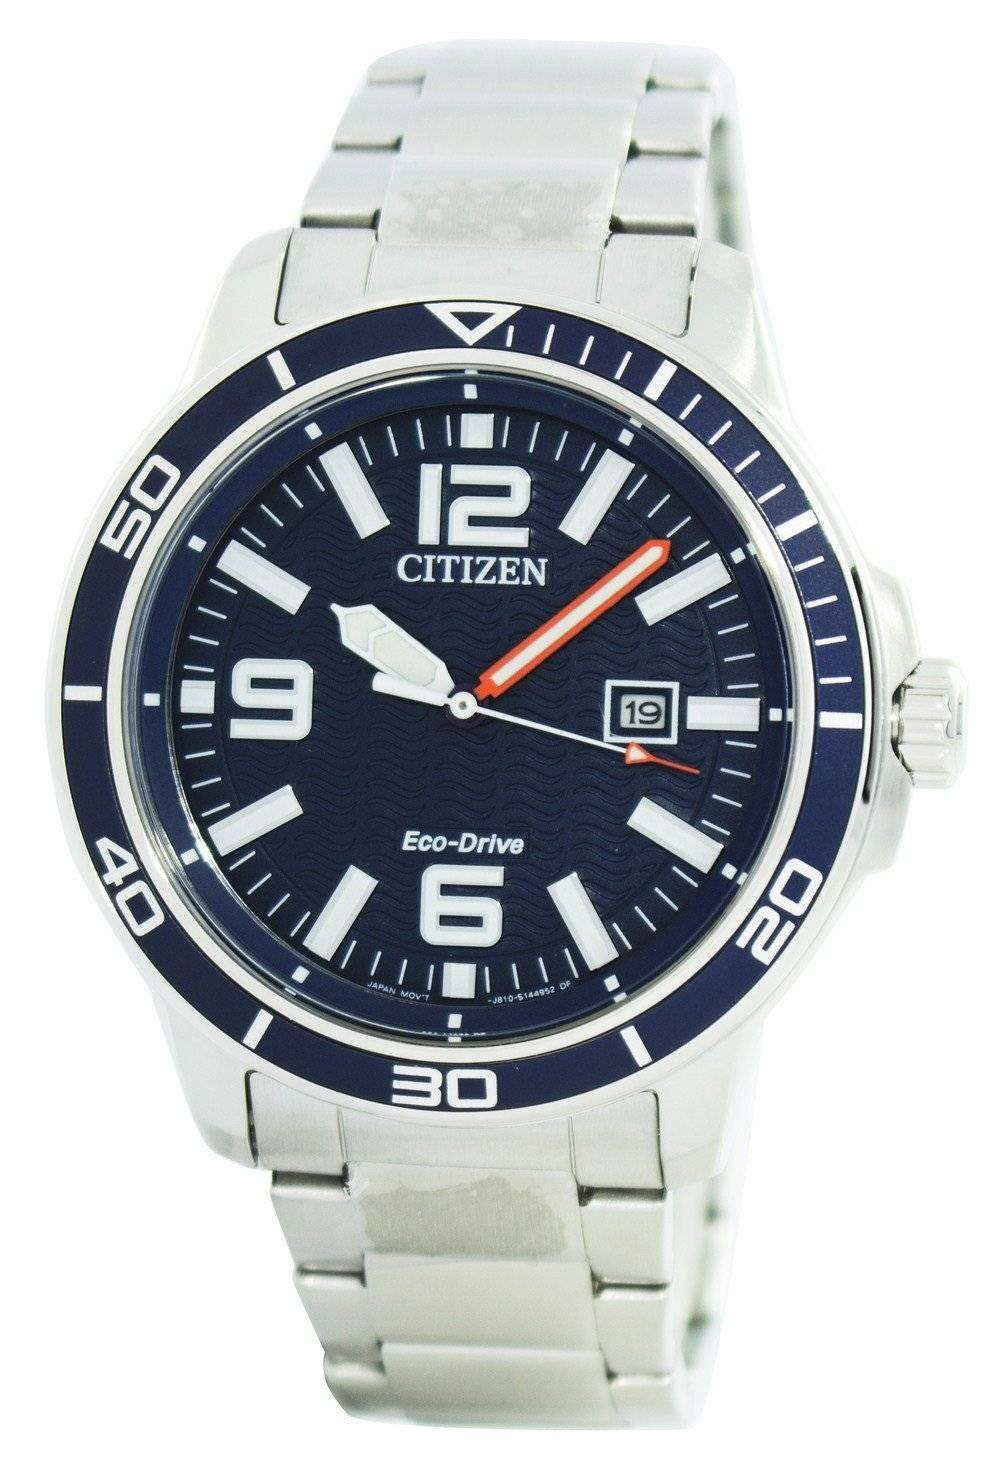 Citizen eco drive sports power reserve aw1520 51l men 39 s watch downunderwatches for Eco drive watch